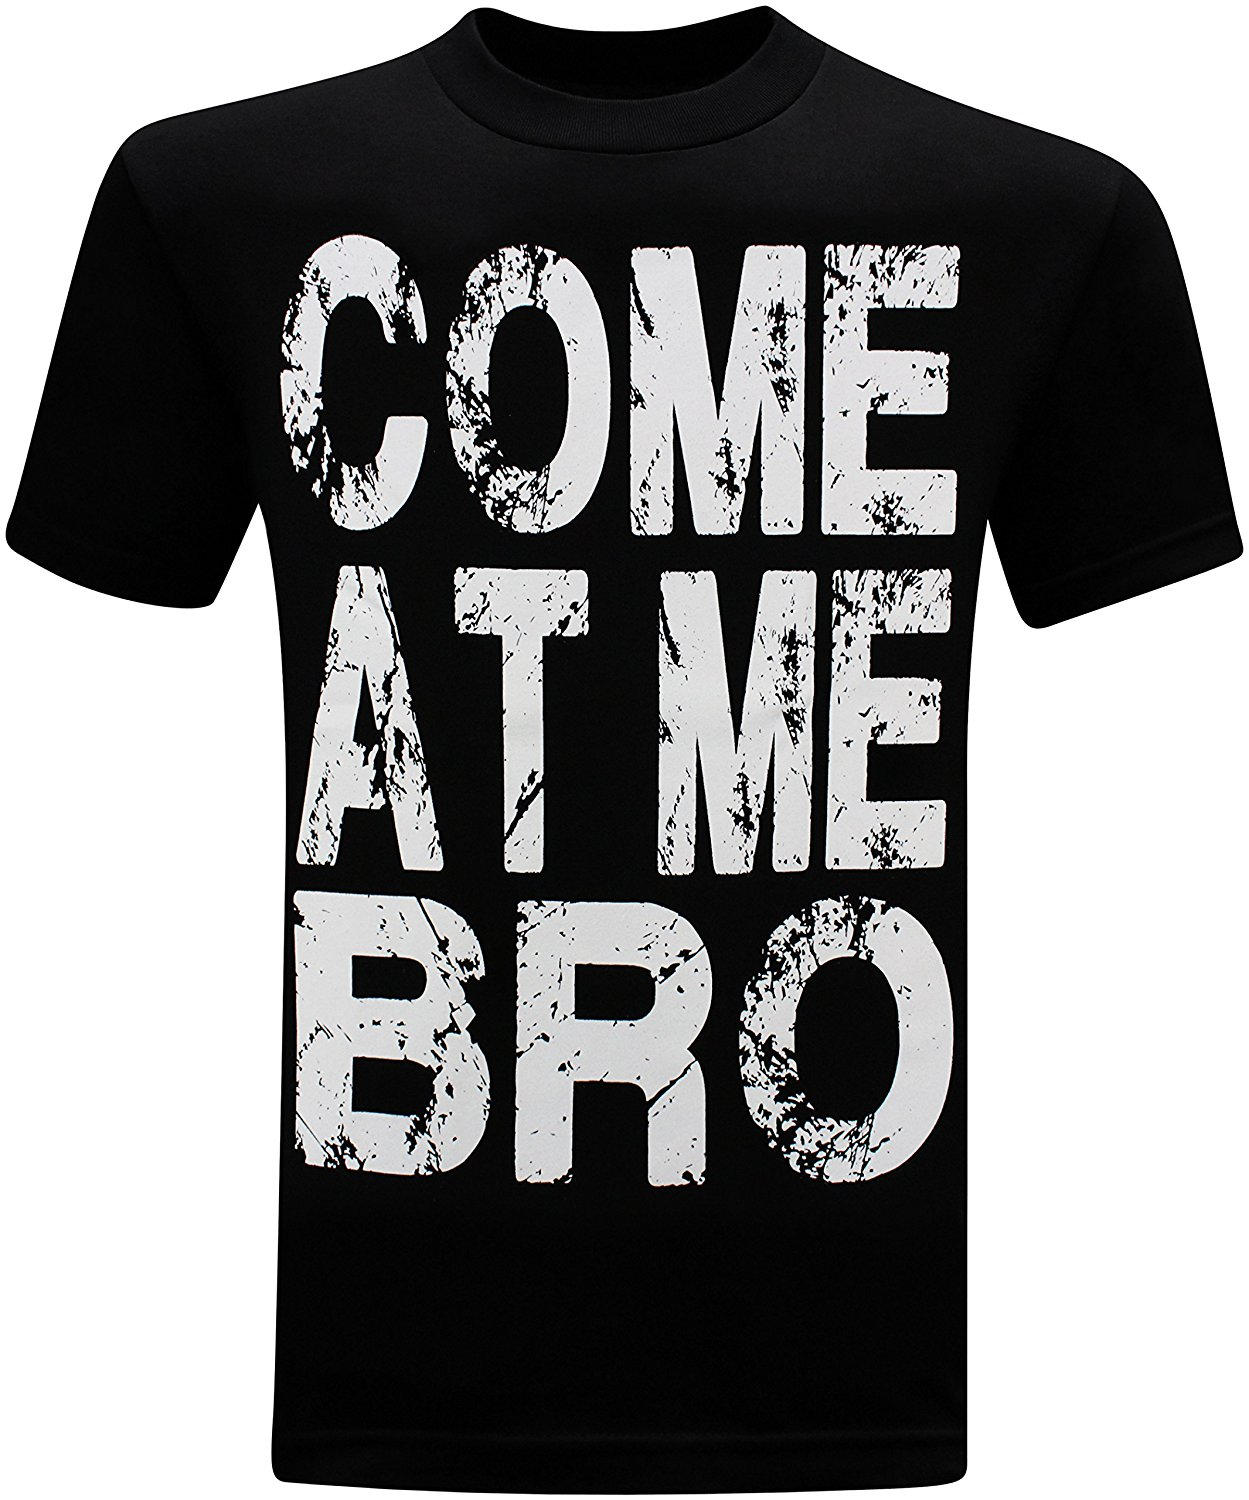 Come At Me Bro Men's T-Shirt New Funny Brand Clothing  Fashion T-Shirts Slim Fit O-Neck Print T Shirt Summer Style